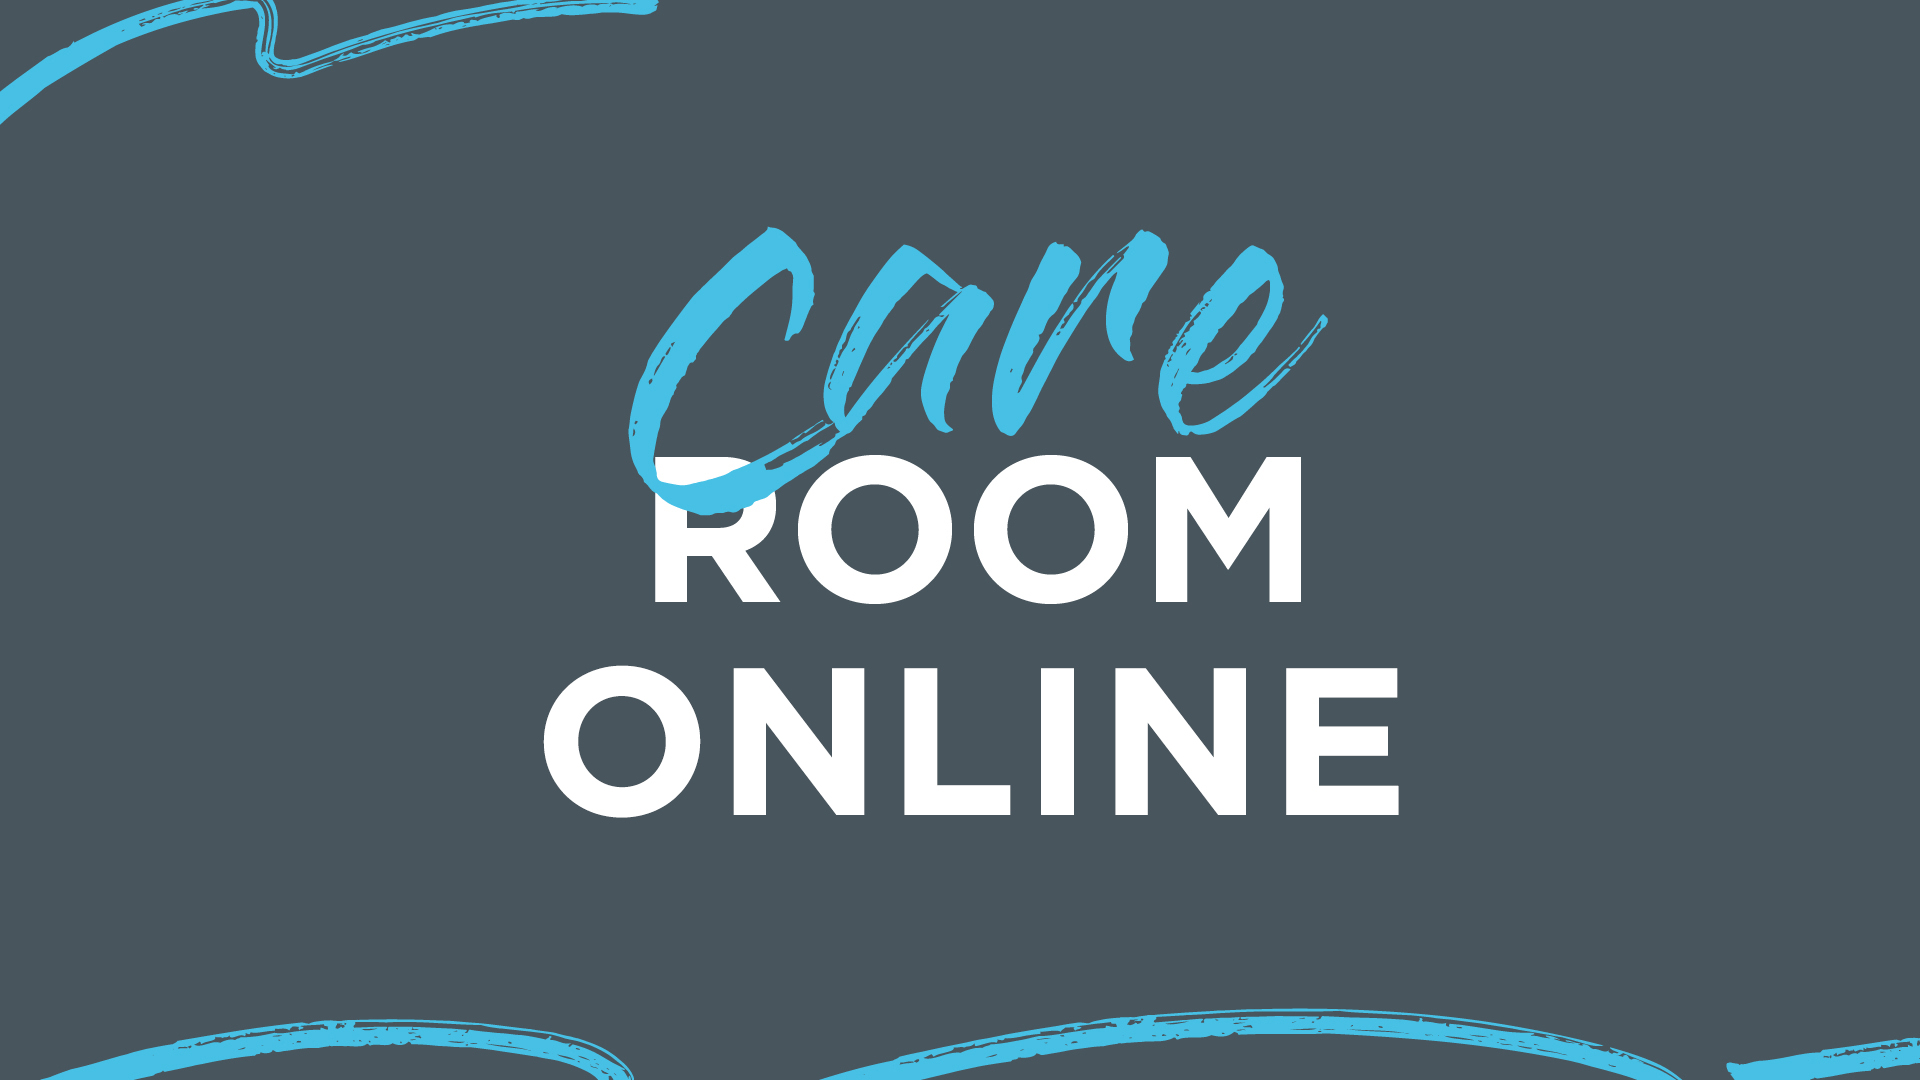 Care Room Online